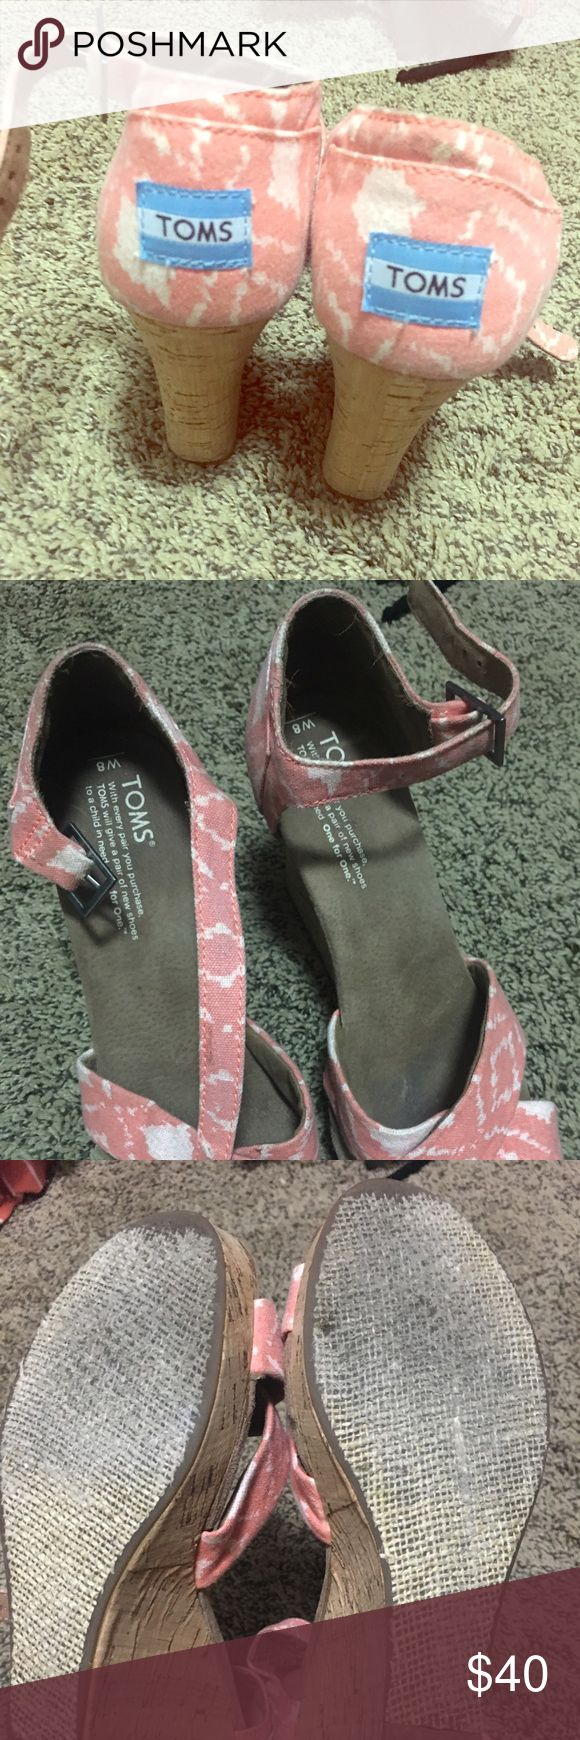 Toms wedge size 8 Toms wedges size 8!  A soft pink with white pattern. TOMS Shoes Wedges